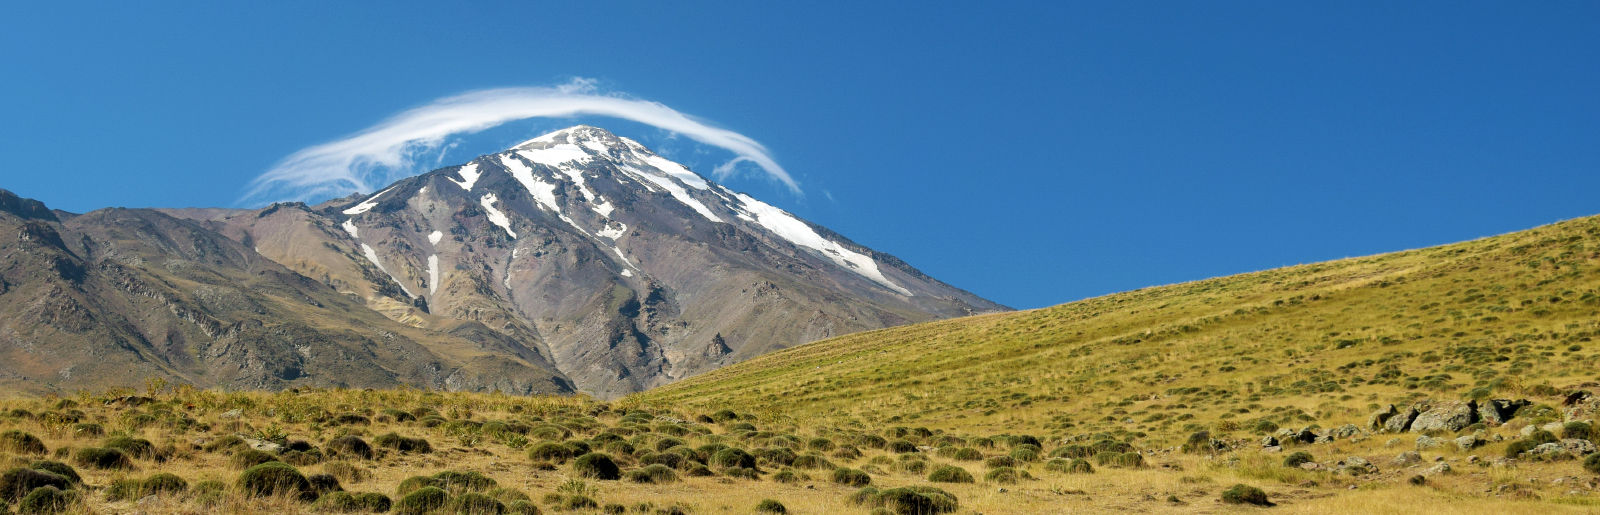 Damavand Mountain Climbing Tour